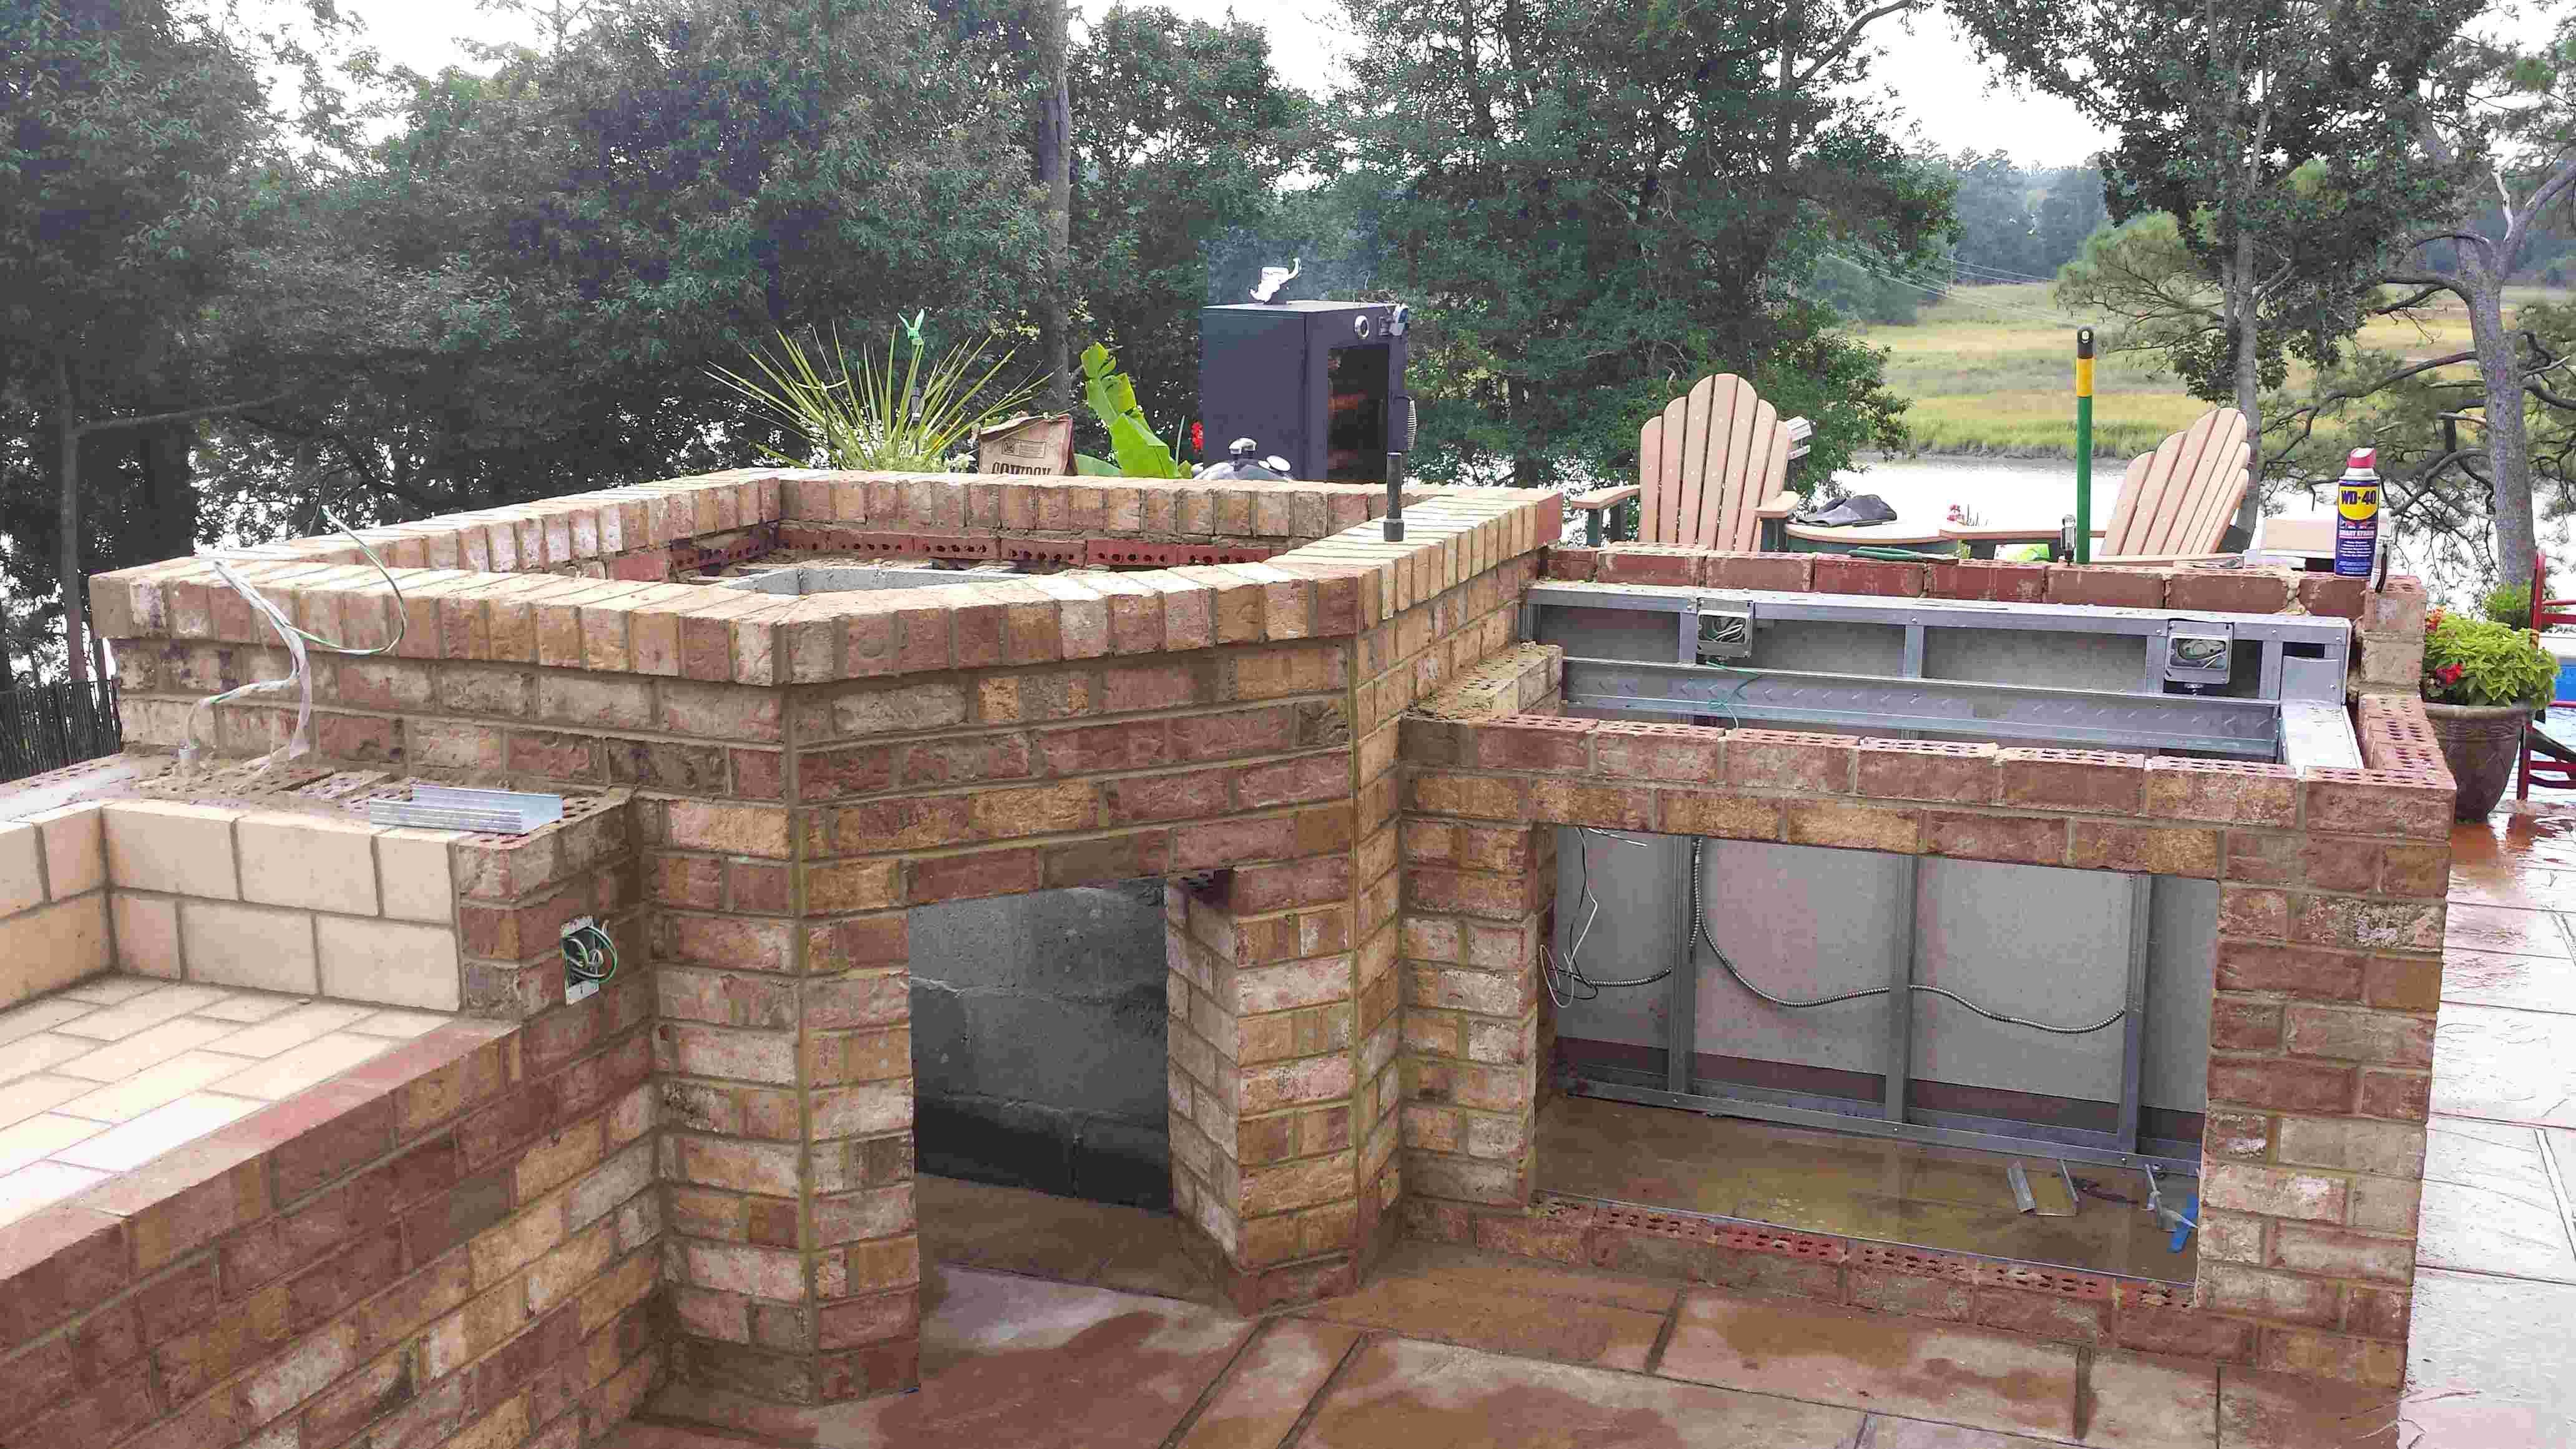 Outdoor Wood Fired Pizza Oven | Outdoor Kitchen With Wood Fired Pizza Oven  Project.